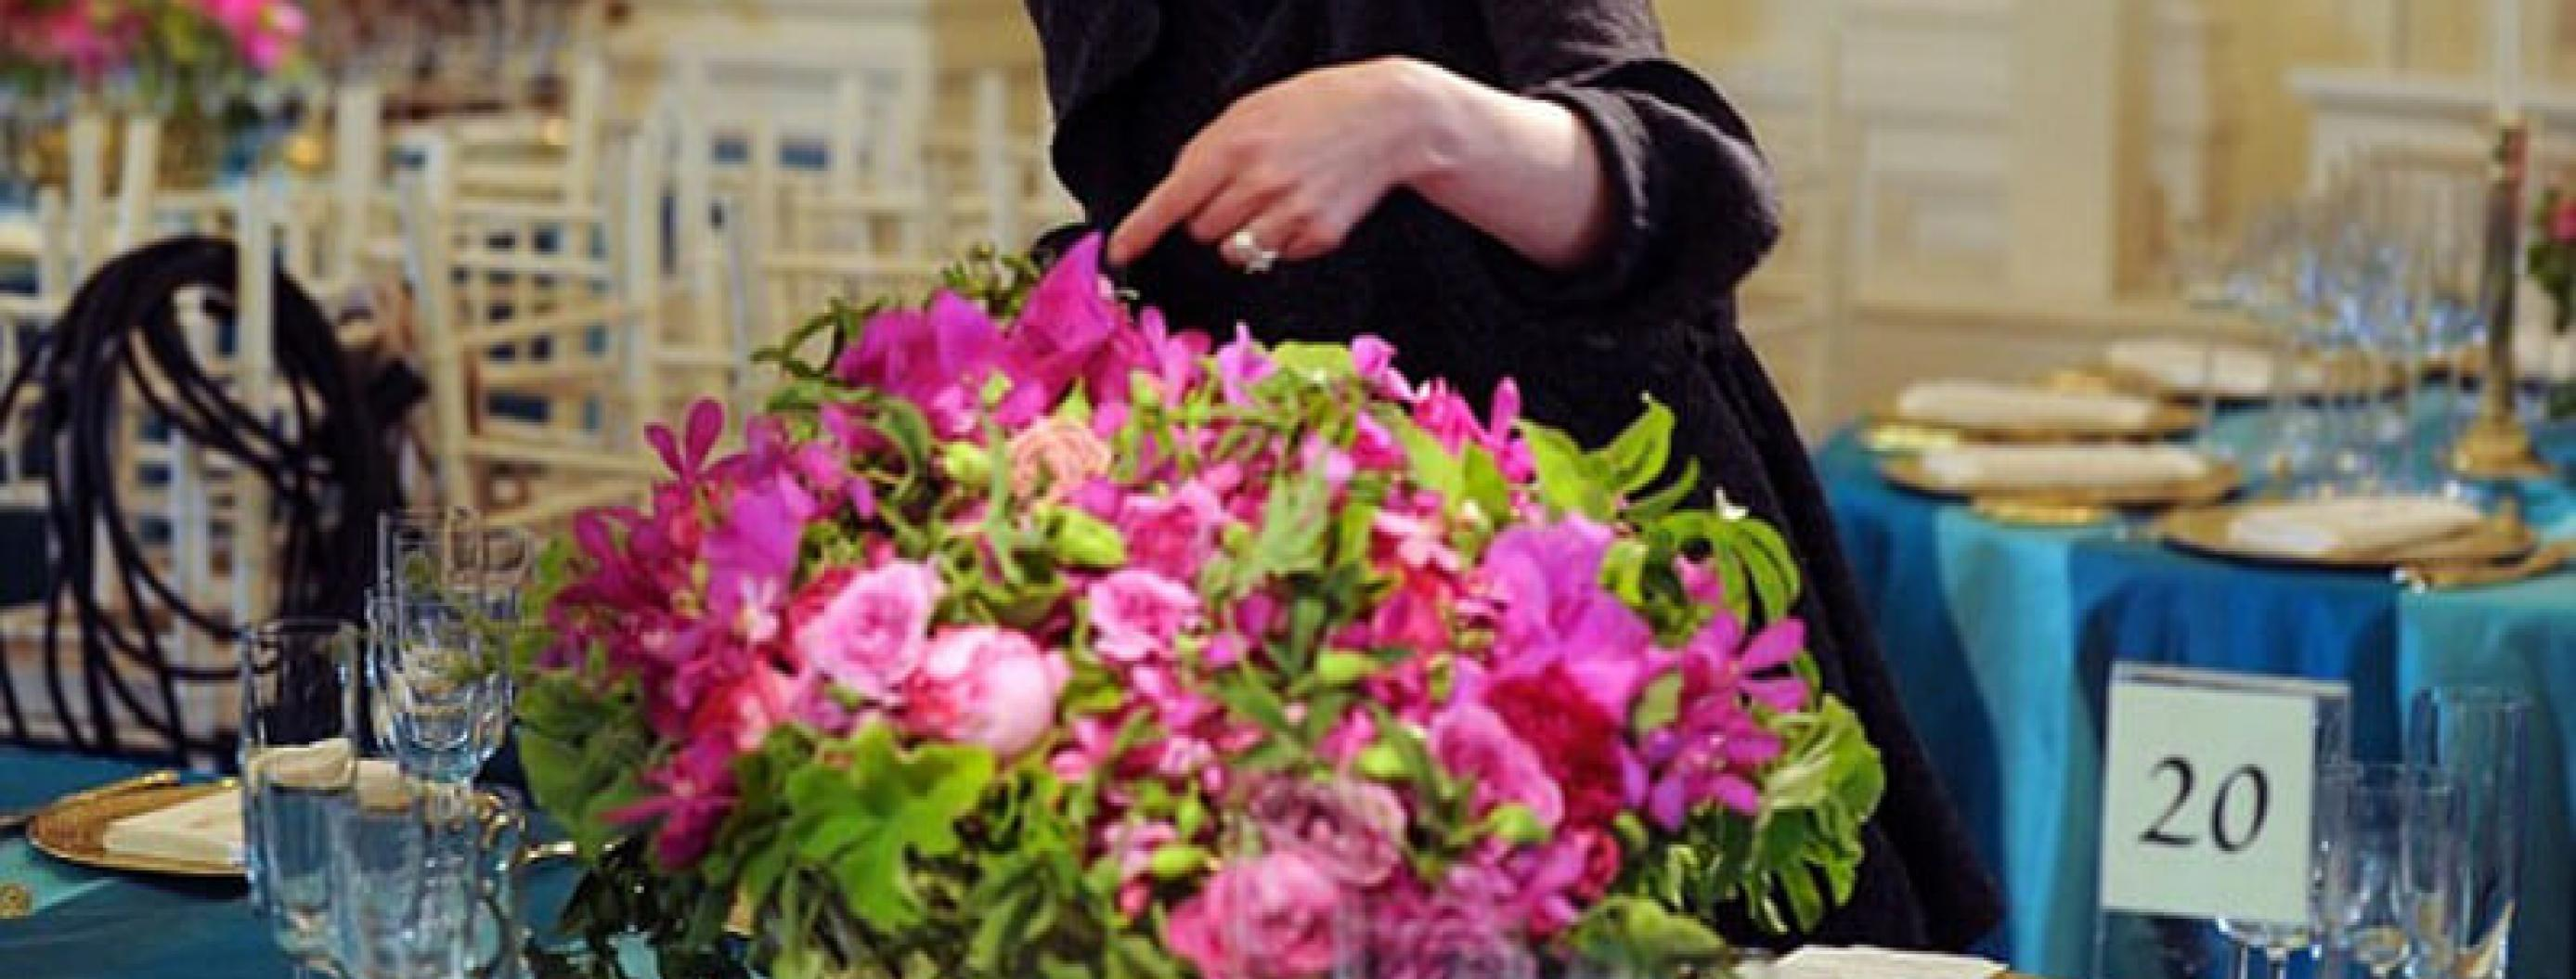 An Inside Look at the Daily Life of a White House Florist